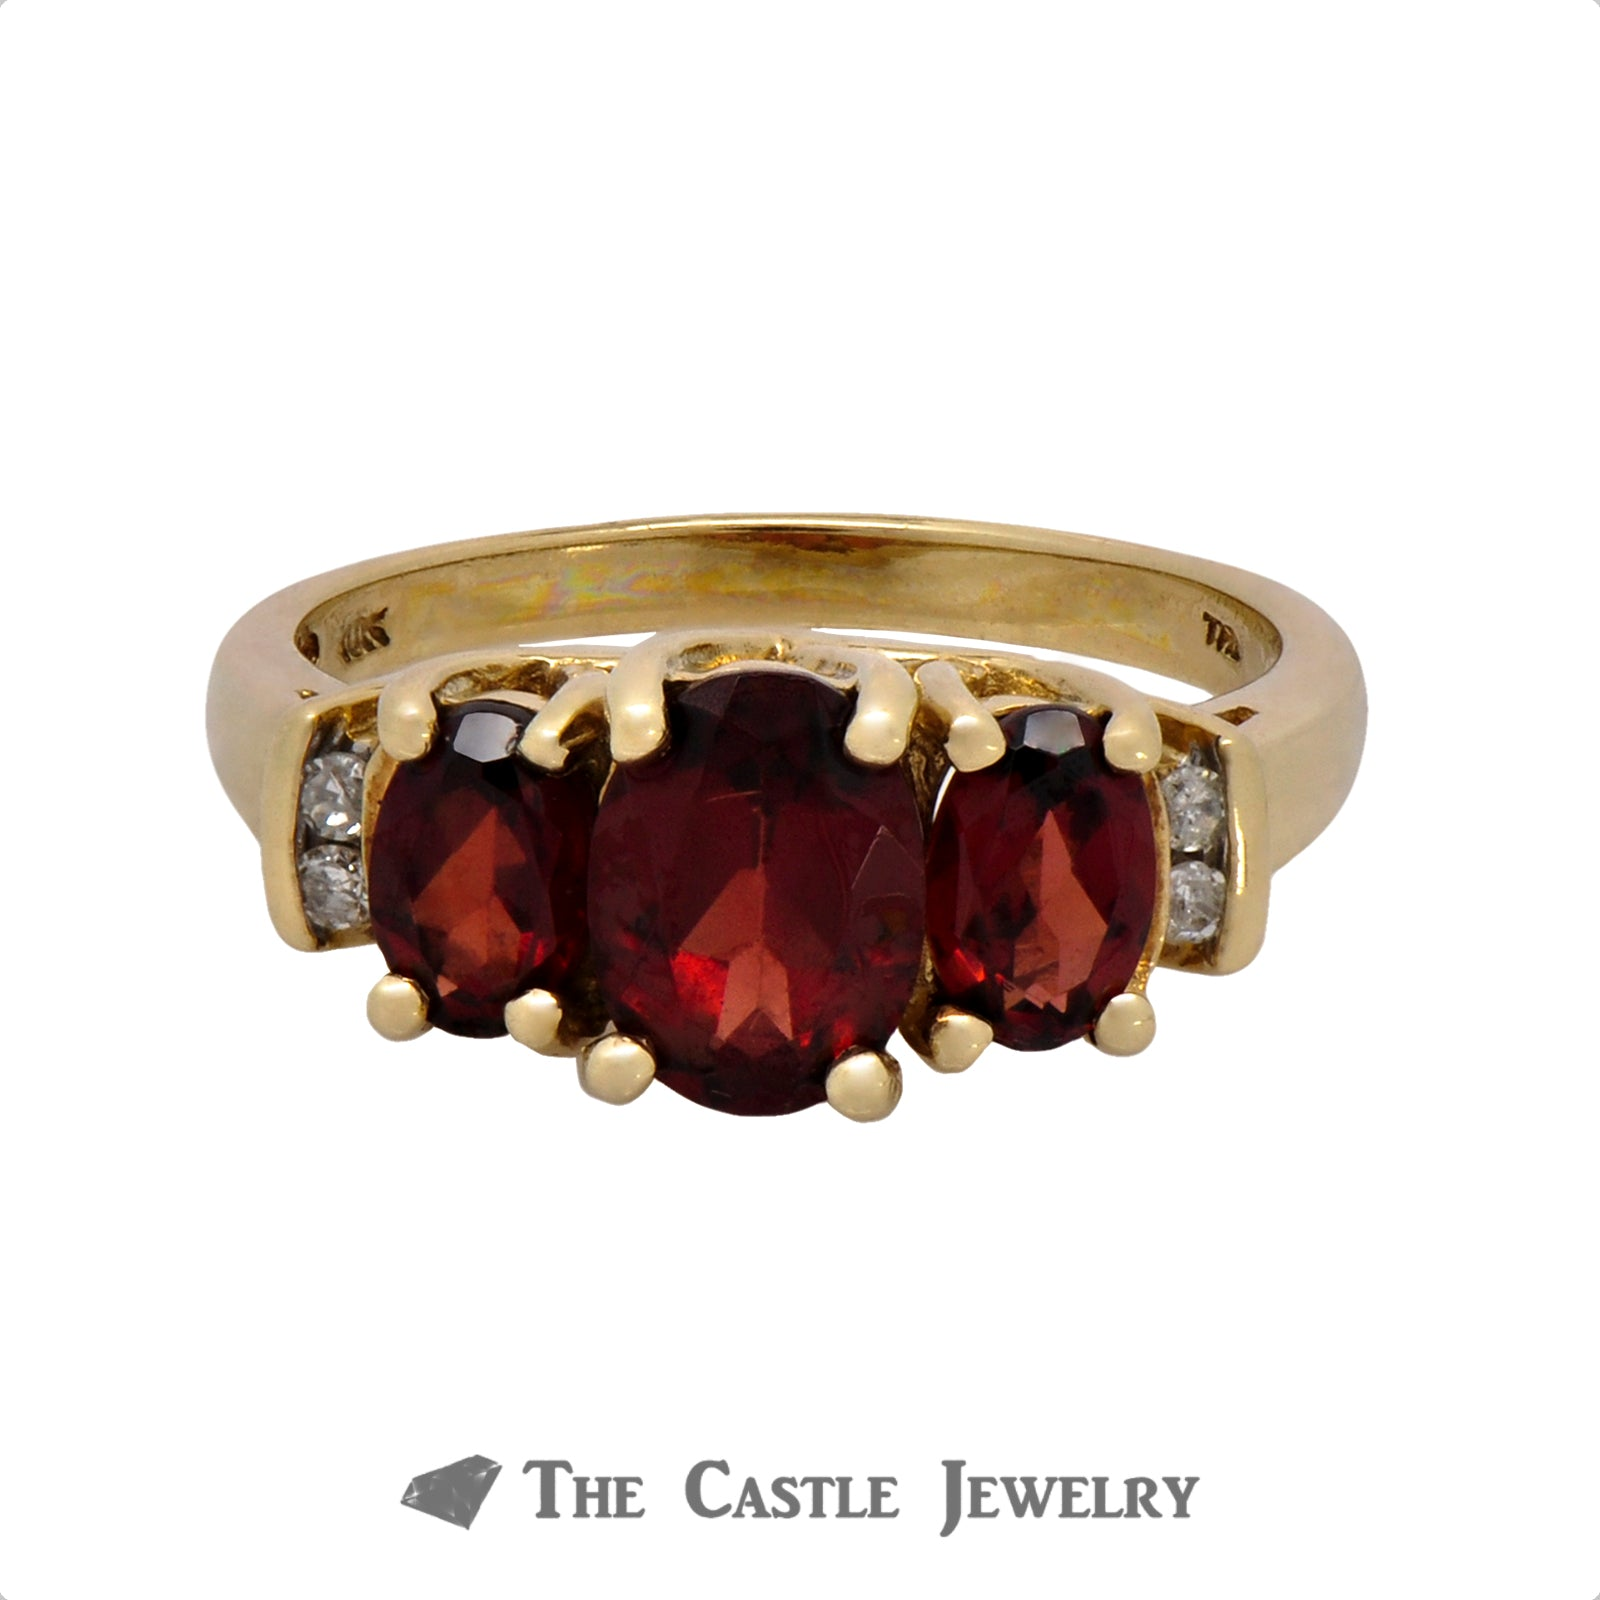 Triple Oval Garnet Ring with Diamond Accents in 10k Yellow Gold